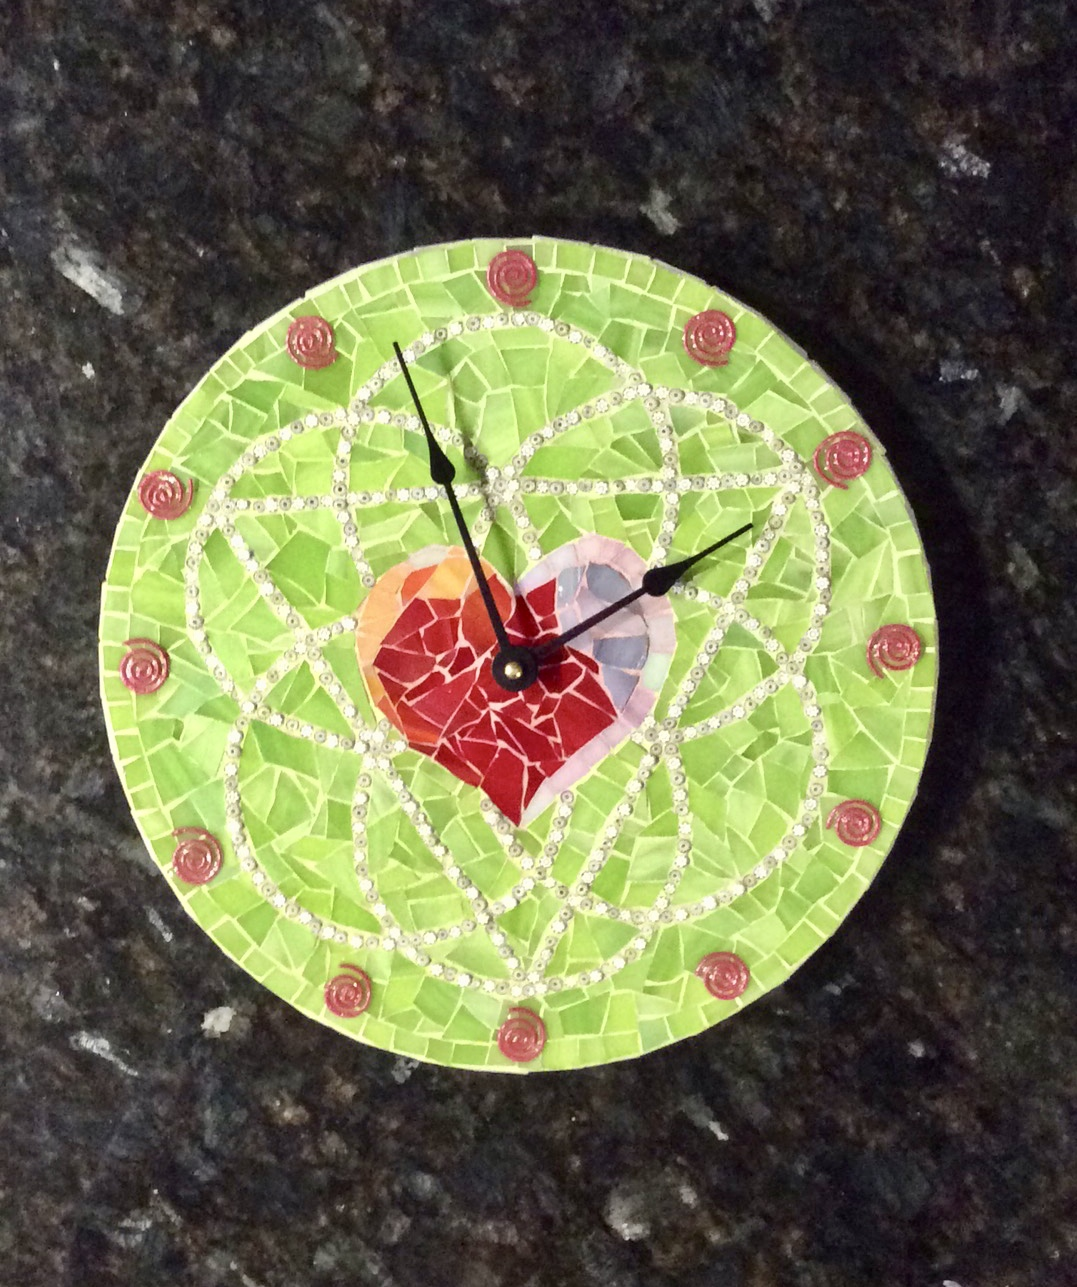 The is a clock designed around the book cover. It was a gift to a friend of mine who just published her first book.